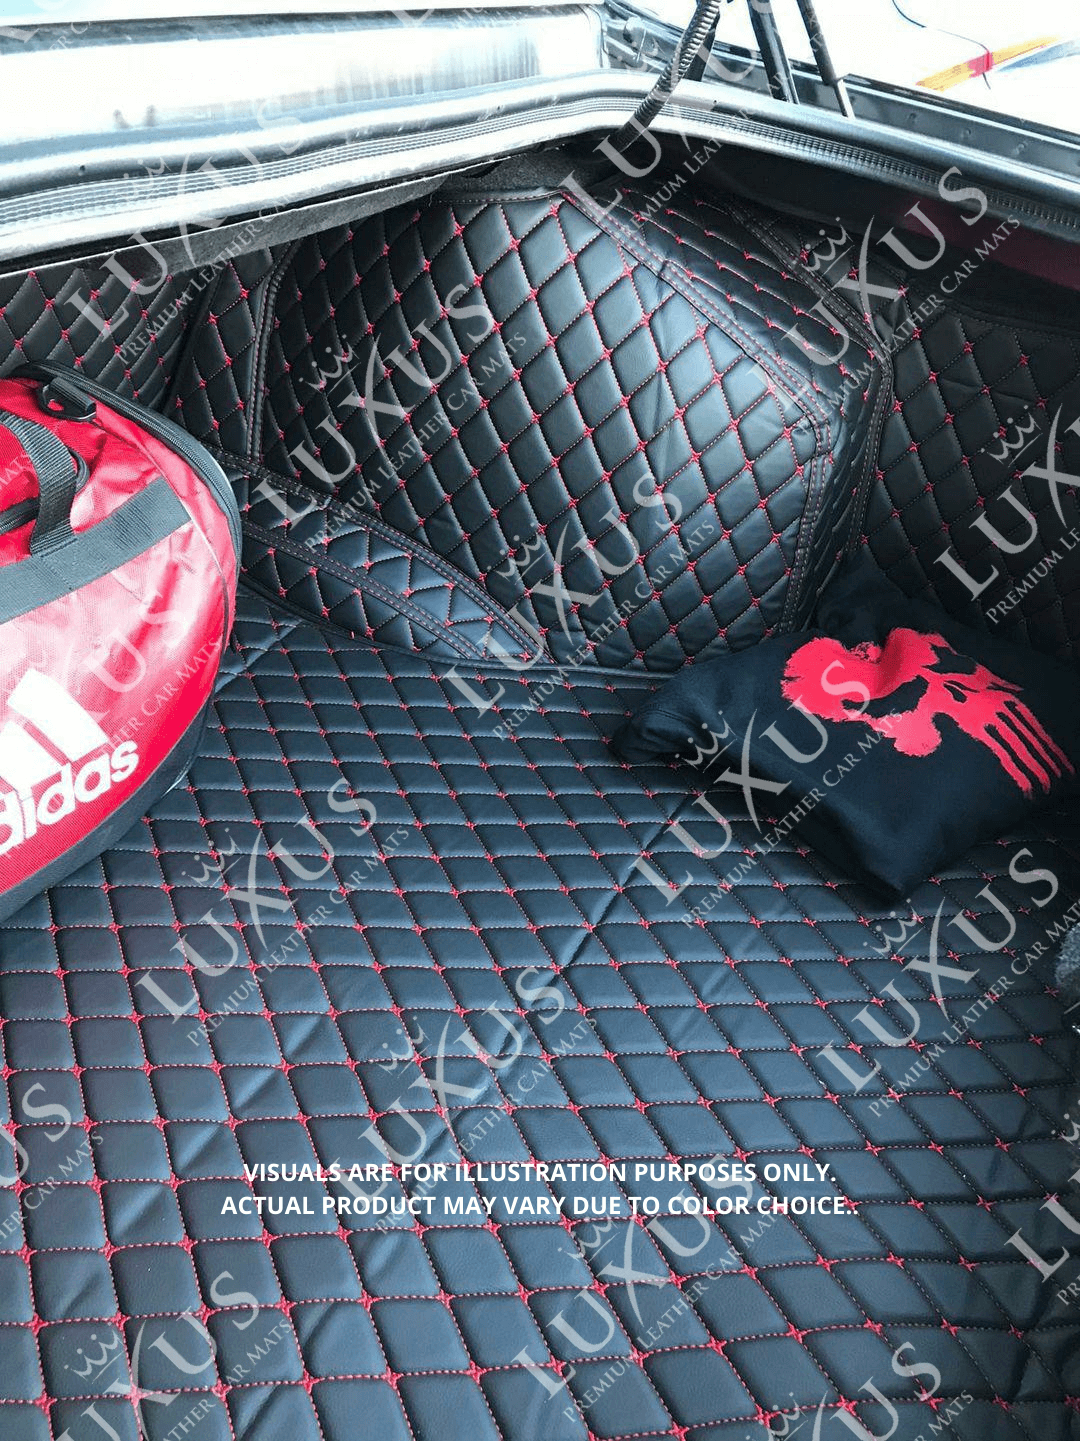 Black & Red Stitching 3D Luxury Leather Boot/Trunk Mat